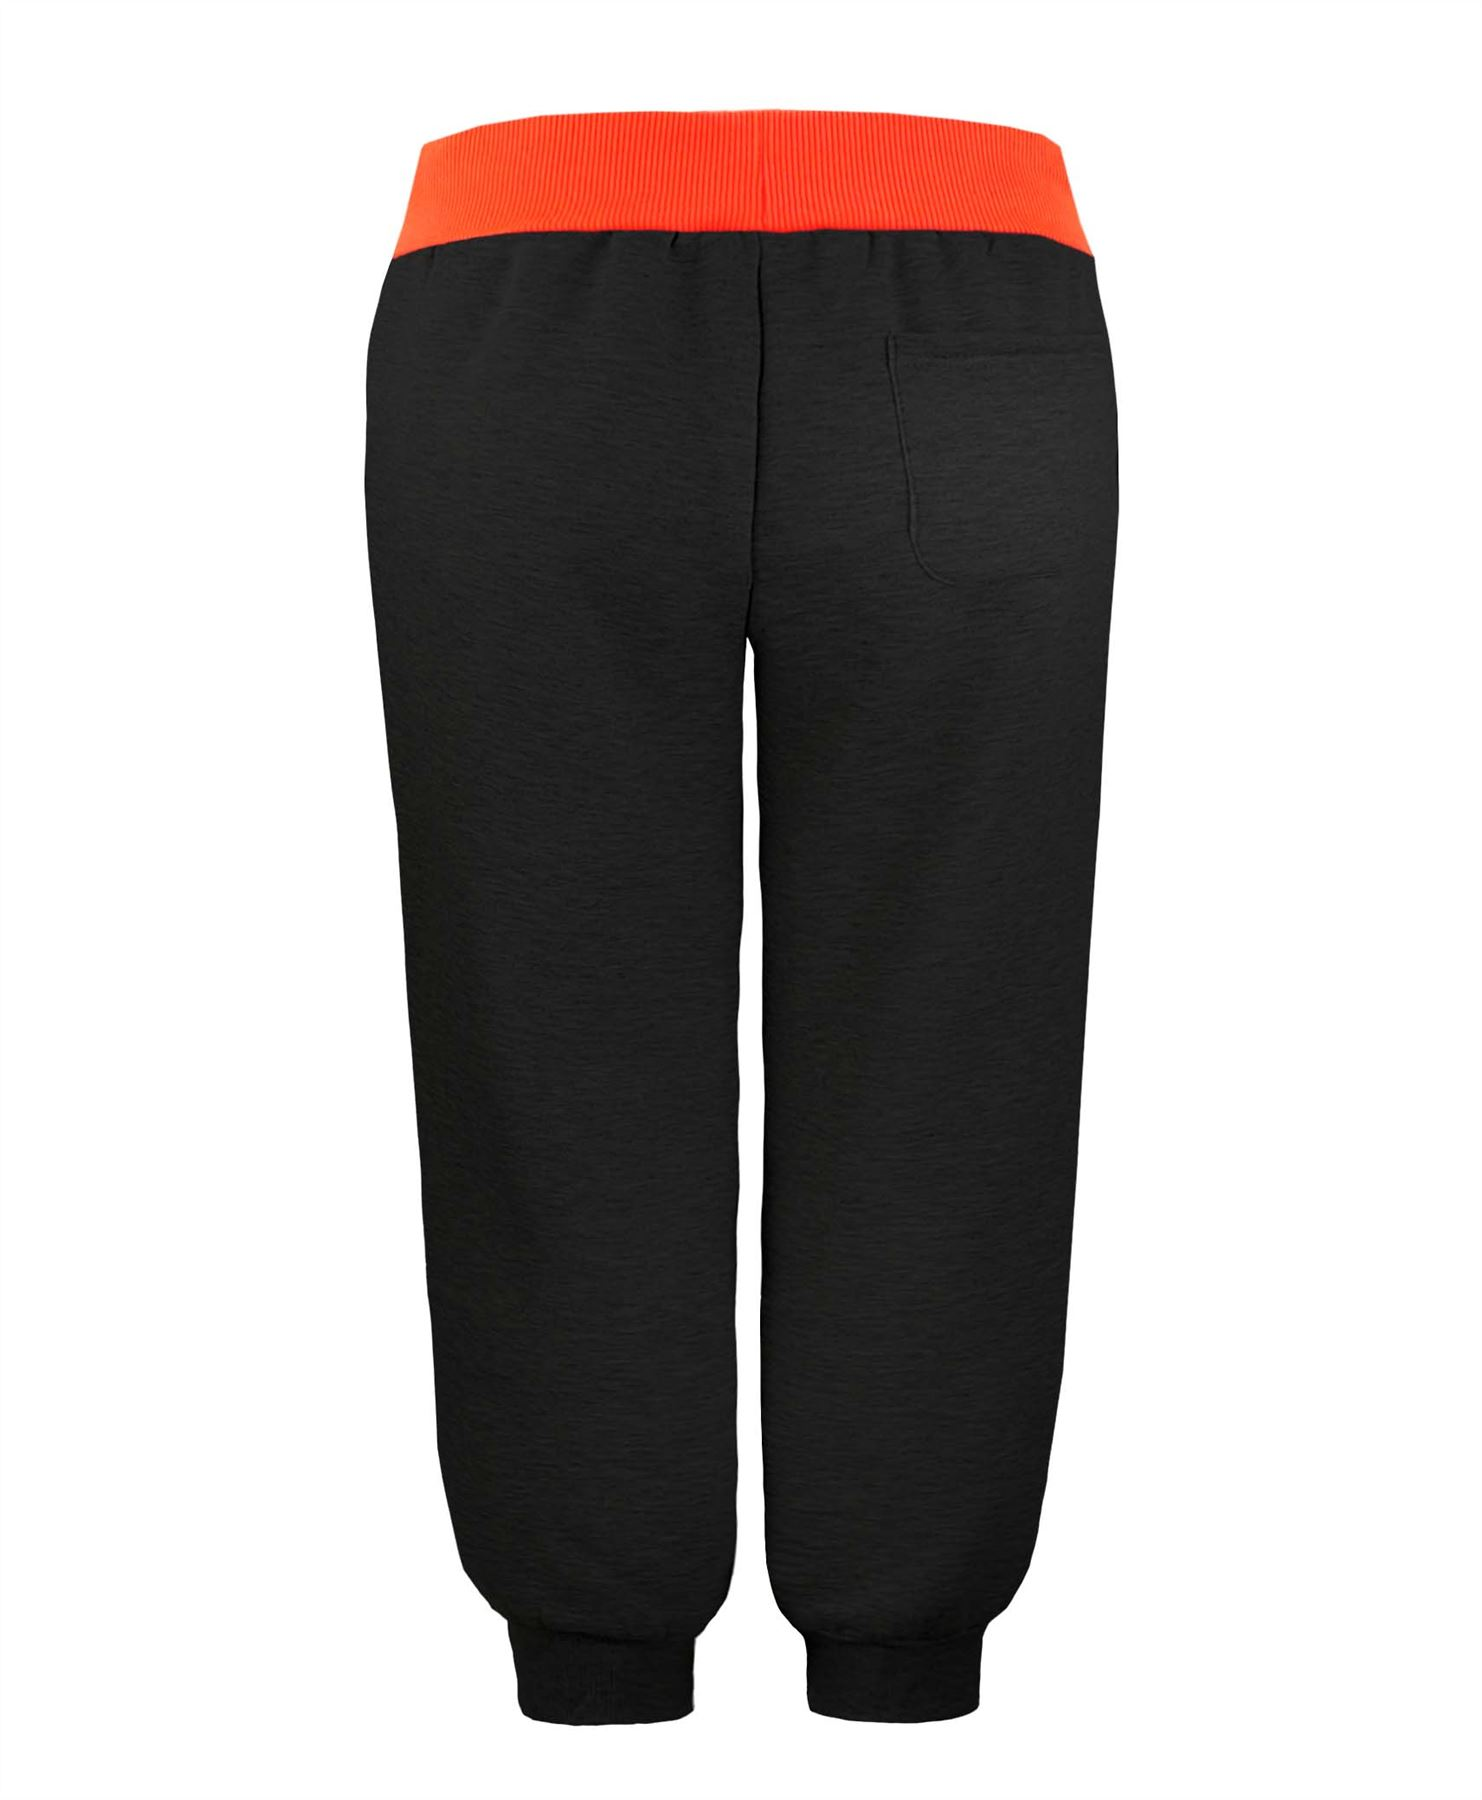 WOMEN MEN GIRLS BOYS BABY LUGGAGE SALES & DEALS NEW ARRIVALS Search results. of results for Clothing, Mens Thermafit Jogger Cuffed Sweat Pants Black (Medium) $ 54 52 Prime. 5 out of 5 stars 3. Loveternal. Men Women 3D Digital Print Graphric Cool Joggers Casual Pants Sports Sweatpants.